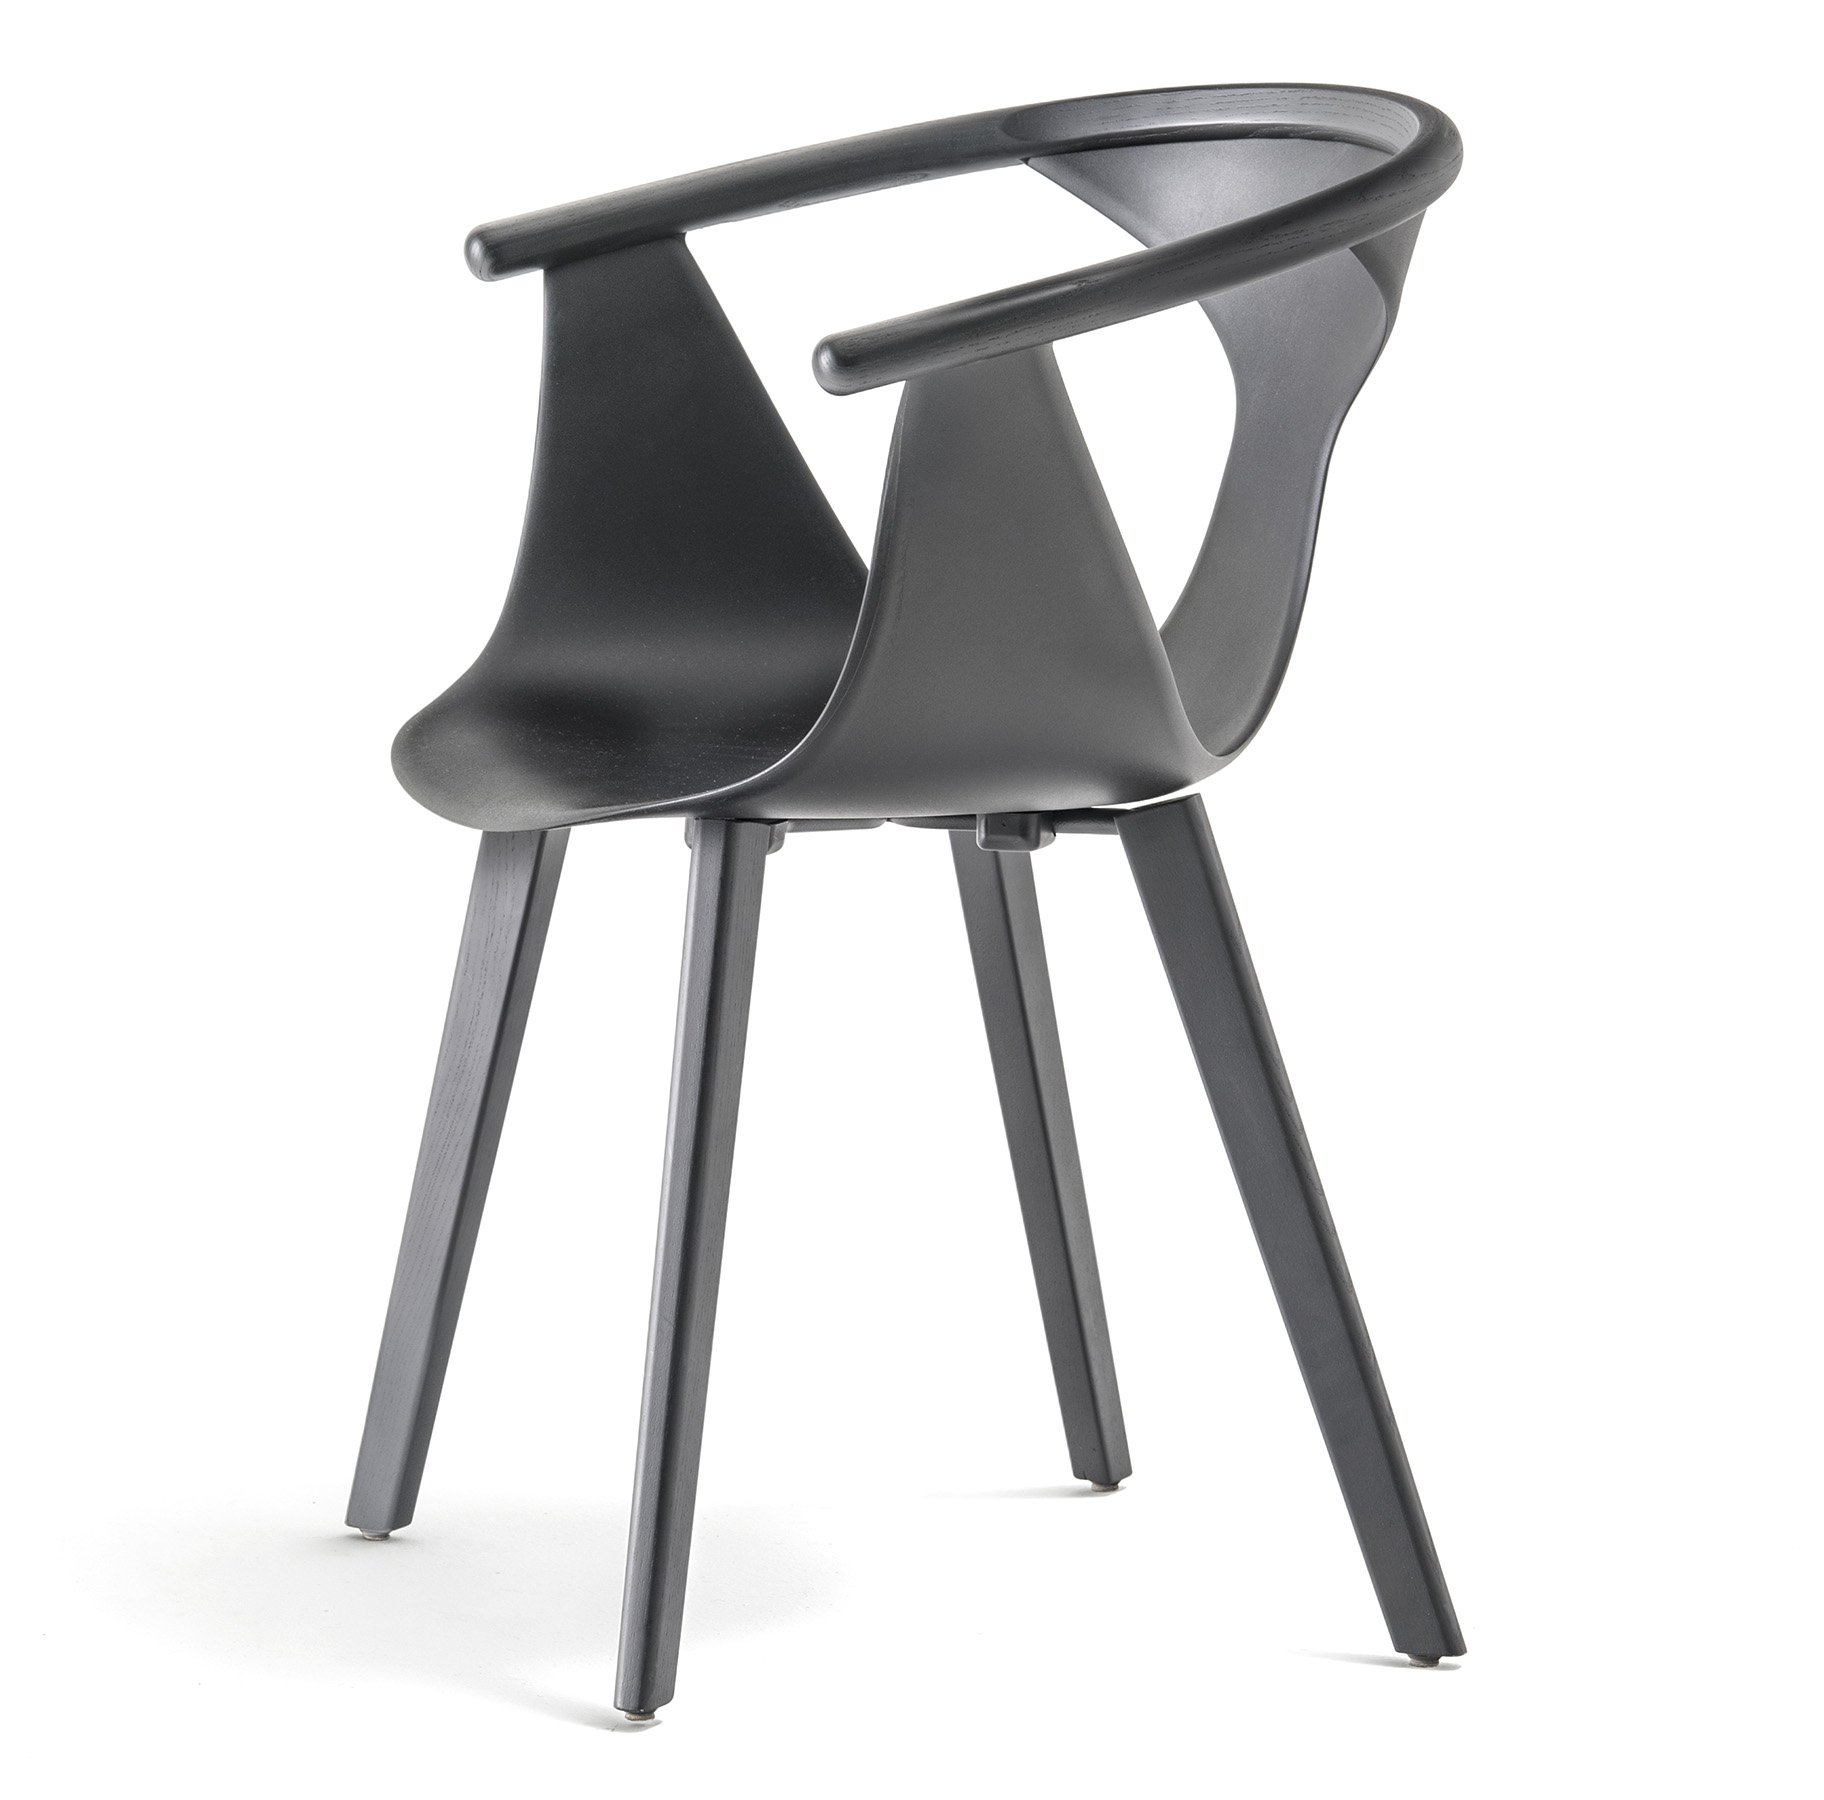 Fox 3725 chair from Pedrali